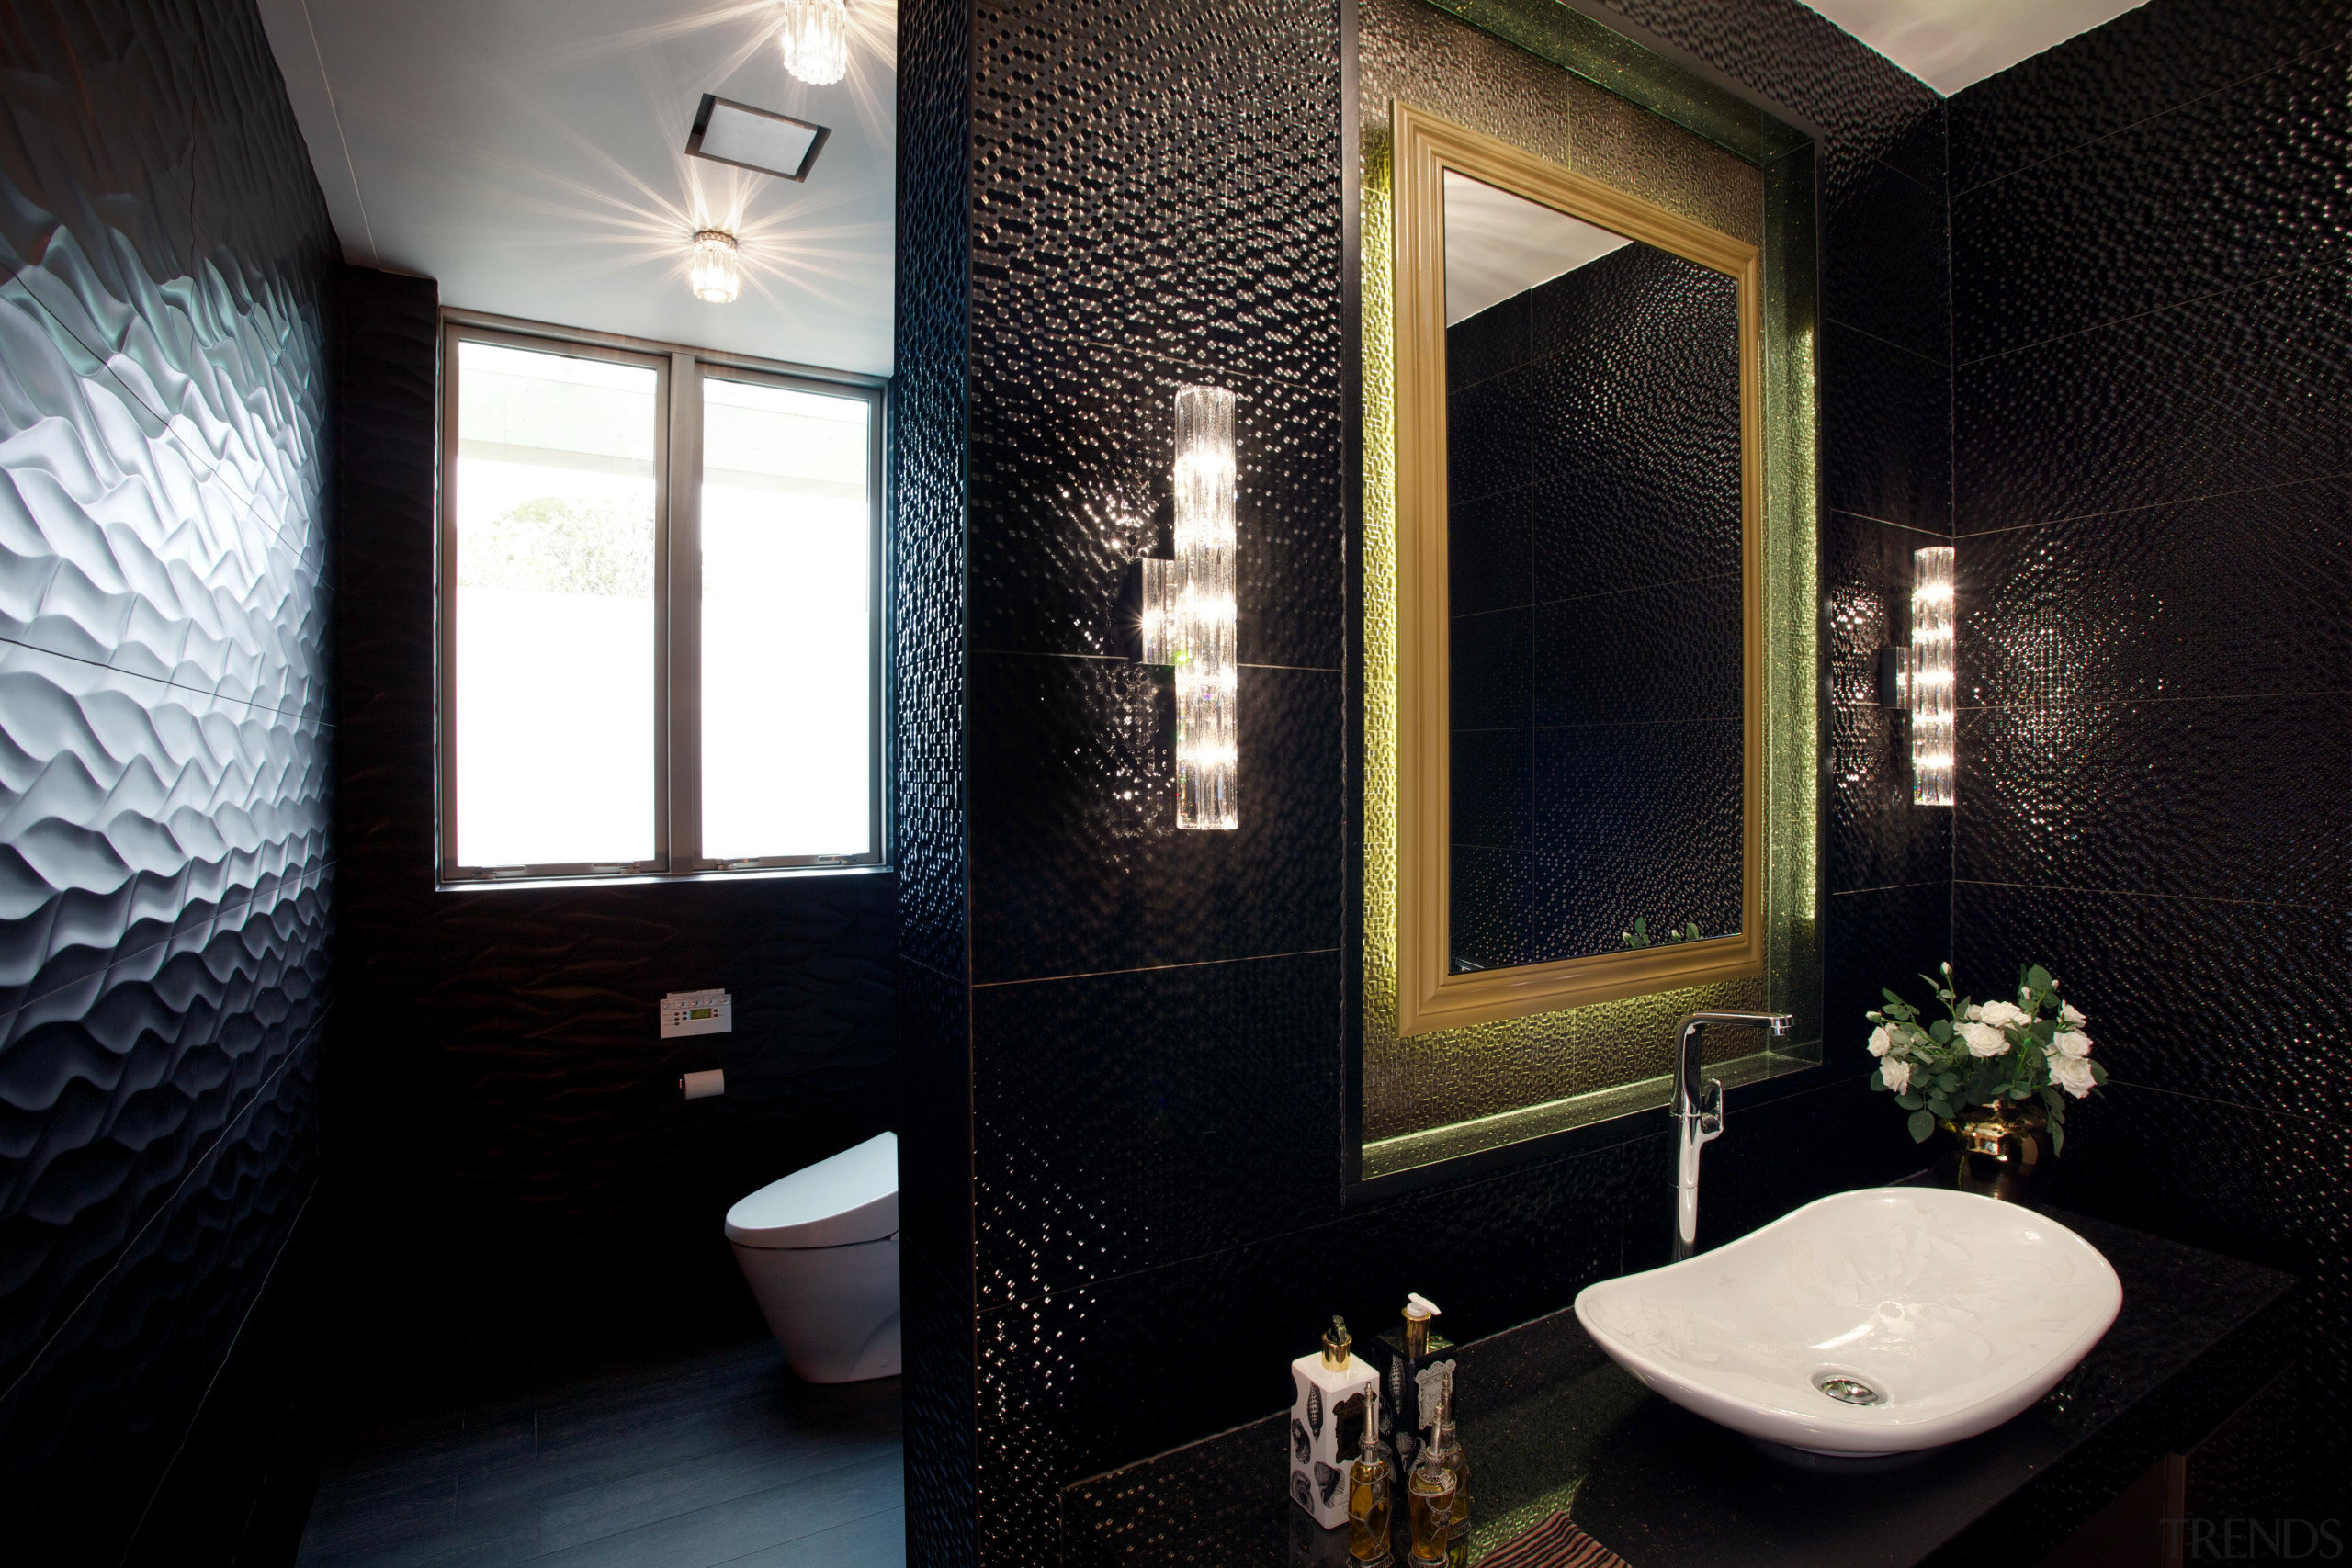 The toilet area is tucked away behind the architecture, bathroom, ceiling, home, interior design, room, window, black